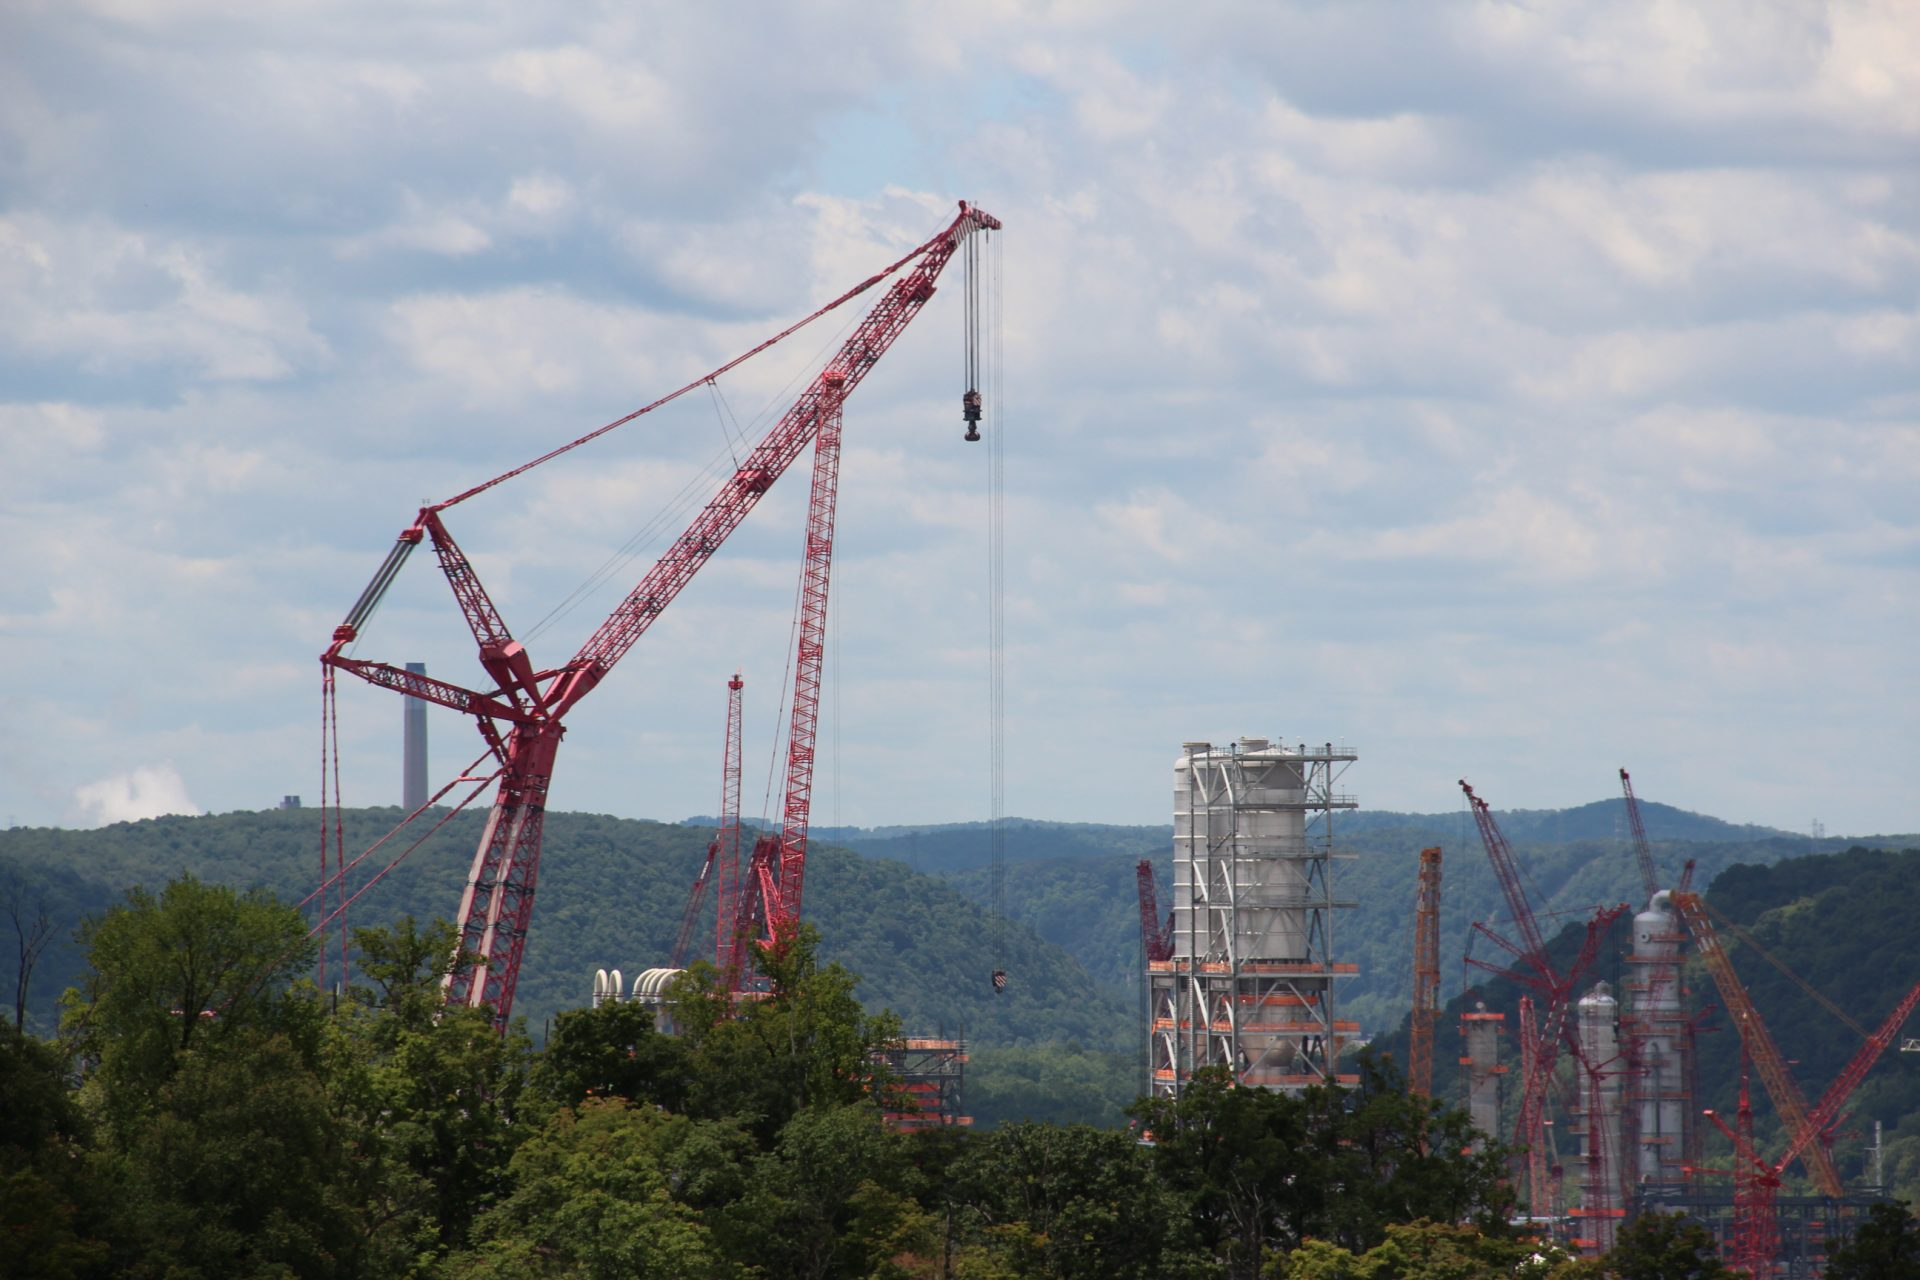 Shell's ethane cracker under construction in June, 2019 in Beaver County, Pa. Photo: Reid R. Frazier